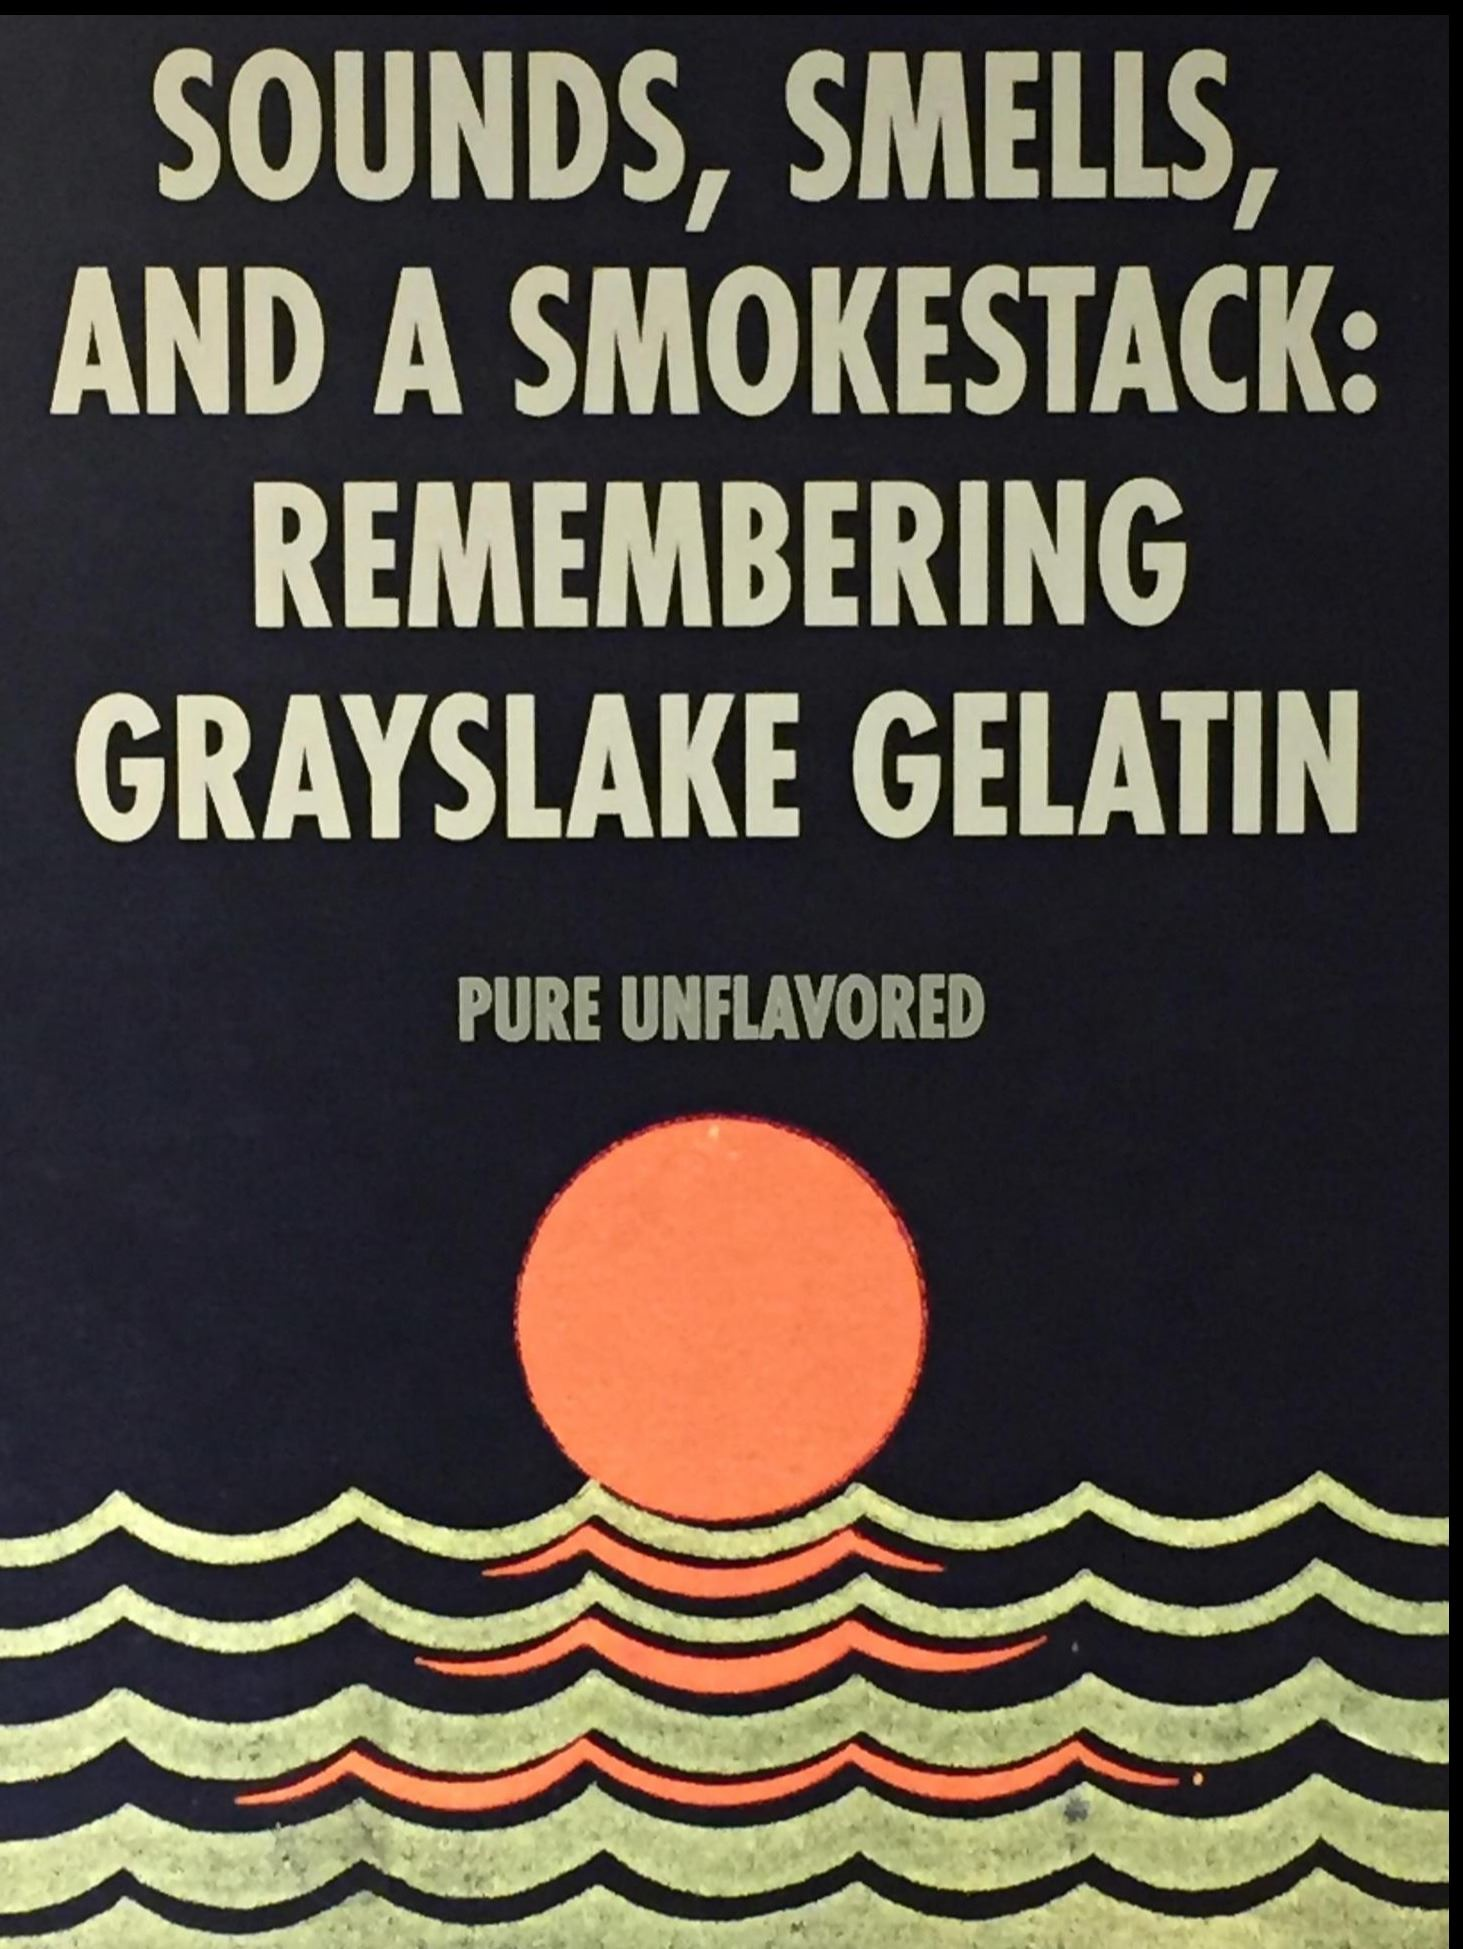 A poster for the Grayslake Sounds, Smells, and a Smokestack exhibit